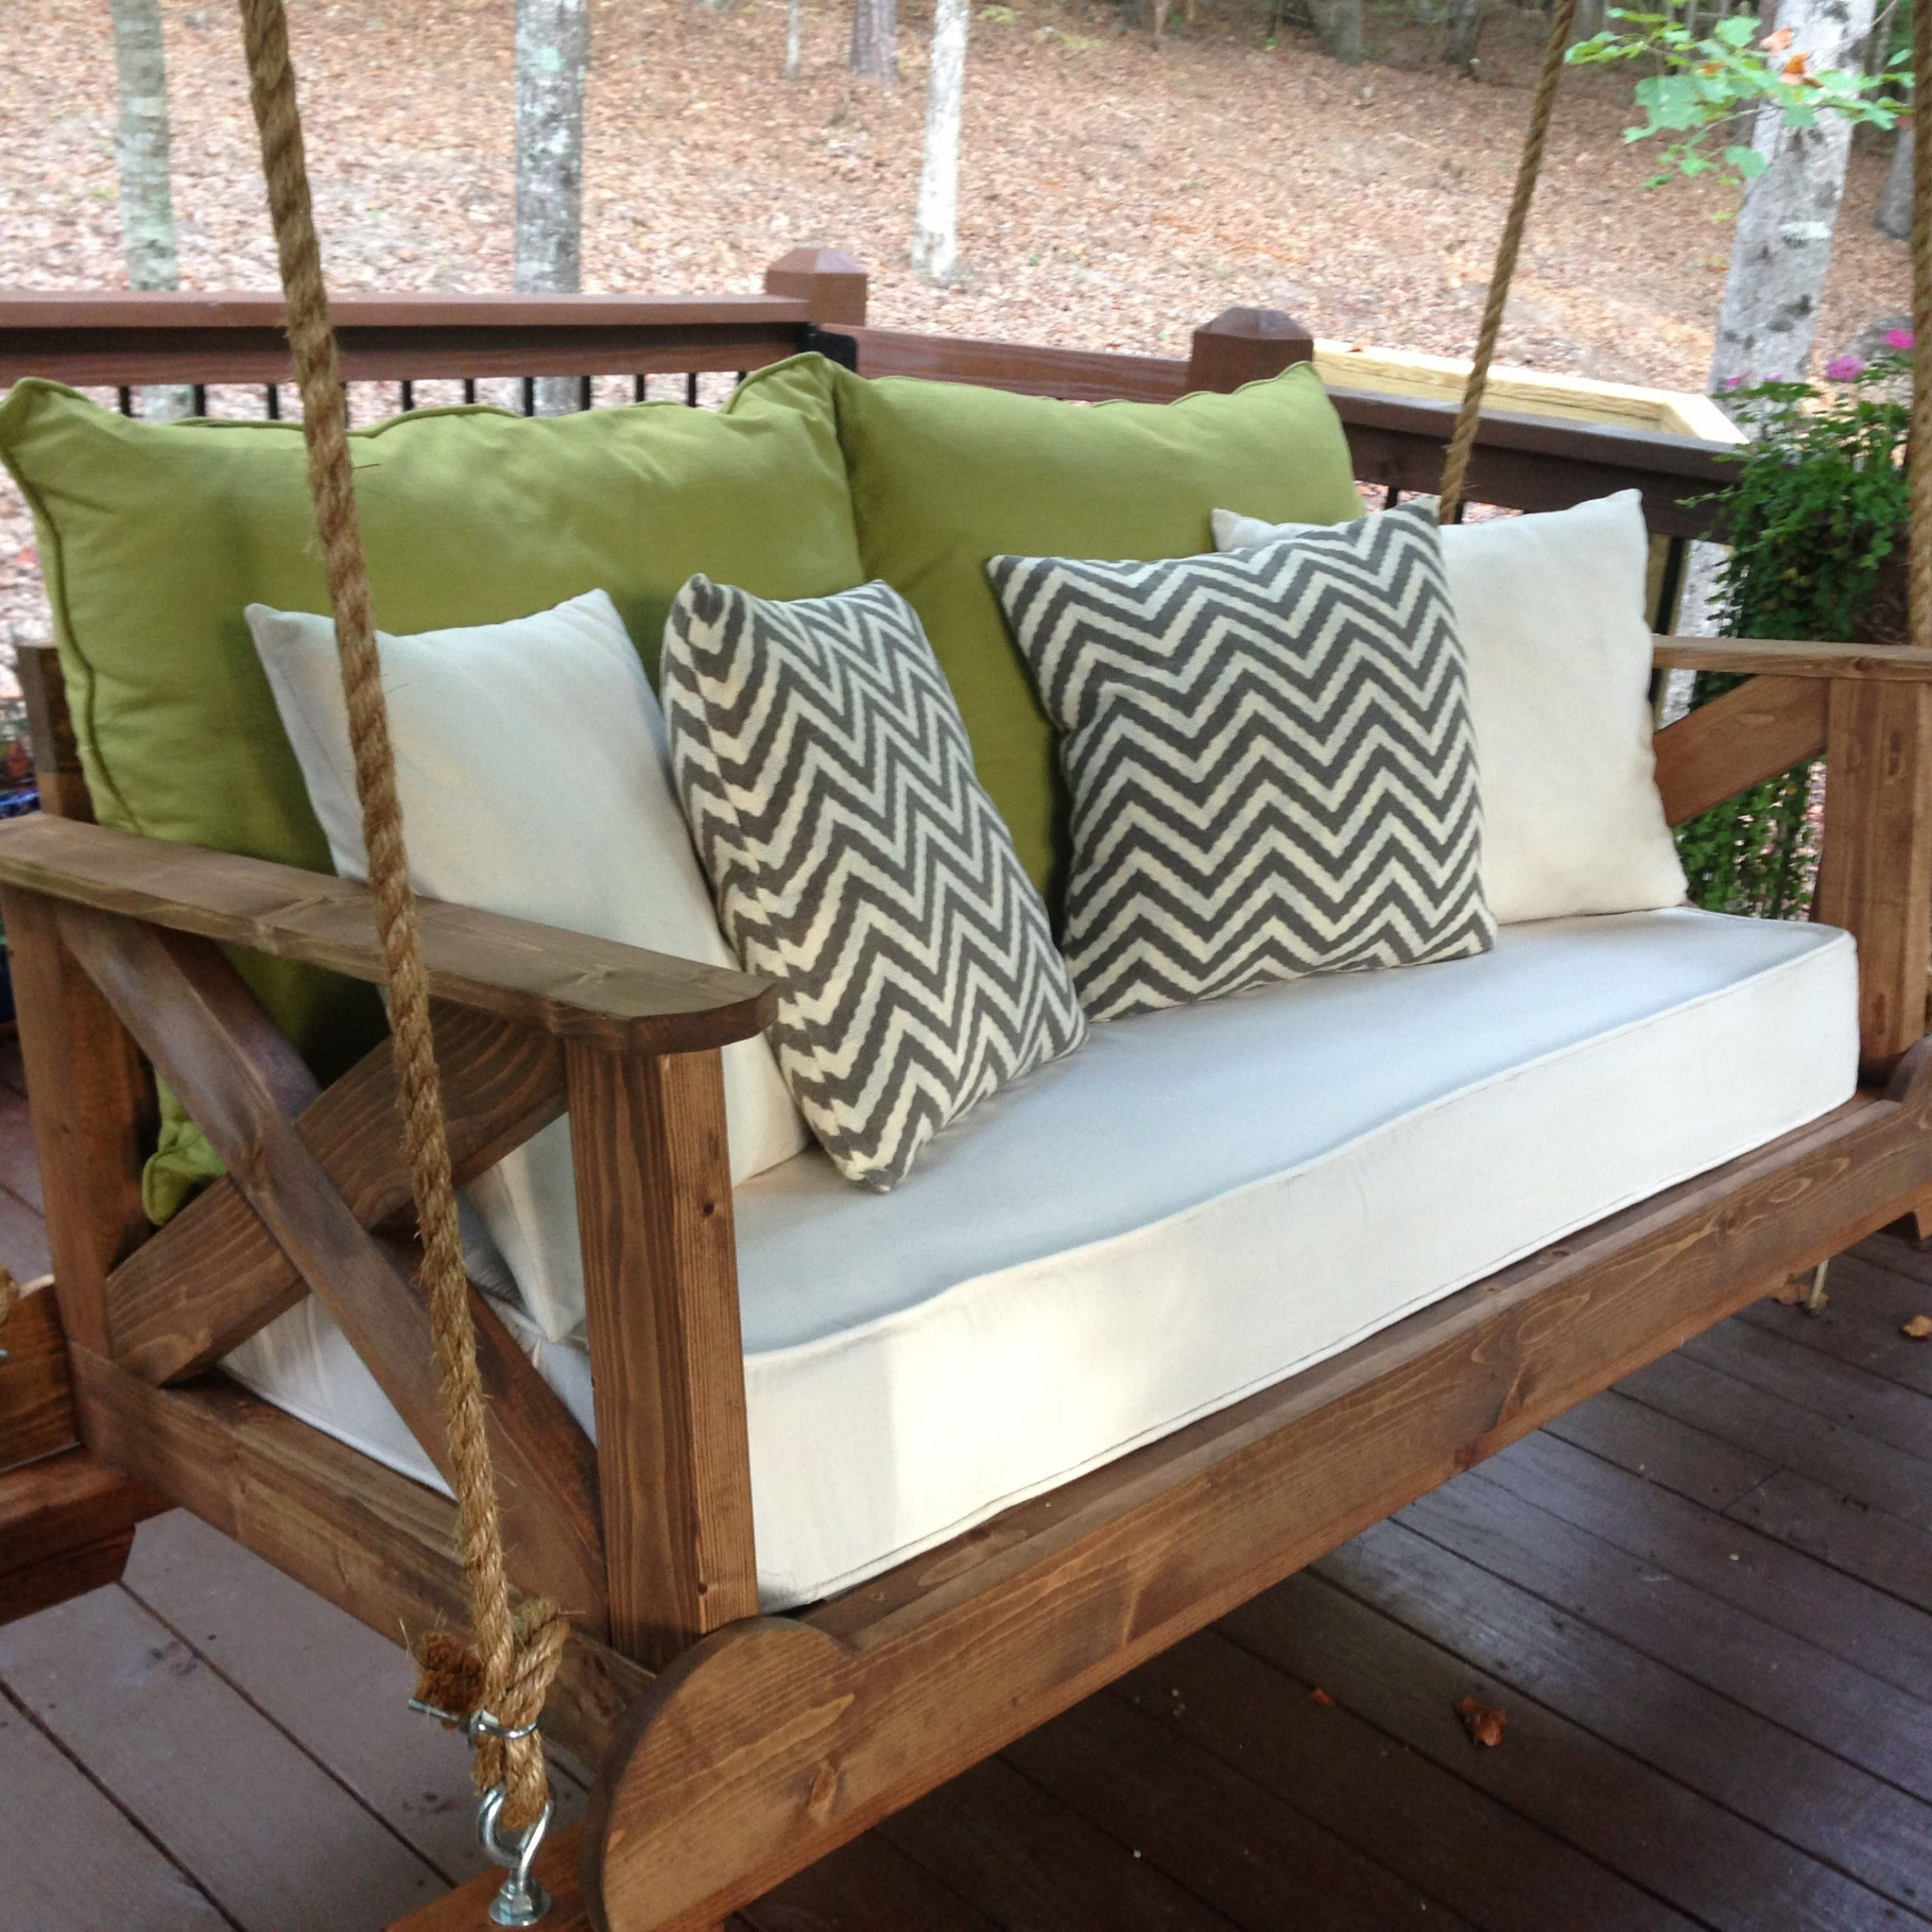 56 Diy Porch Swing Plans [Free Blueprints] | Porch Swing With Porch Swings (View 2 of 25)